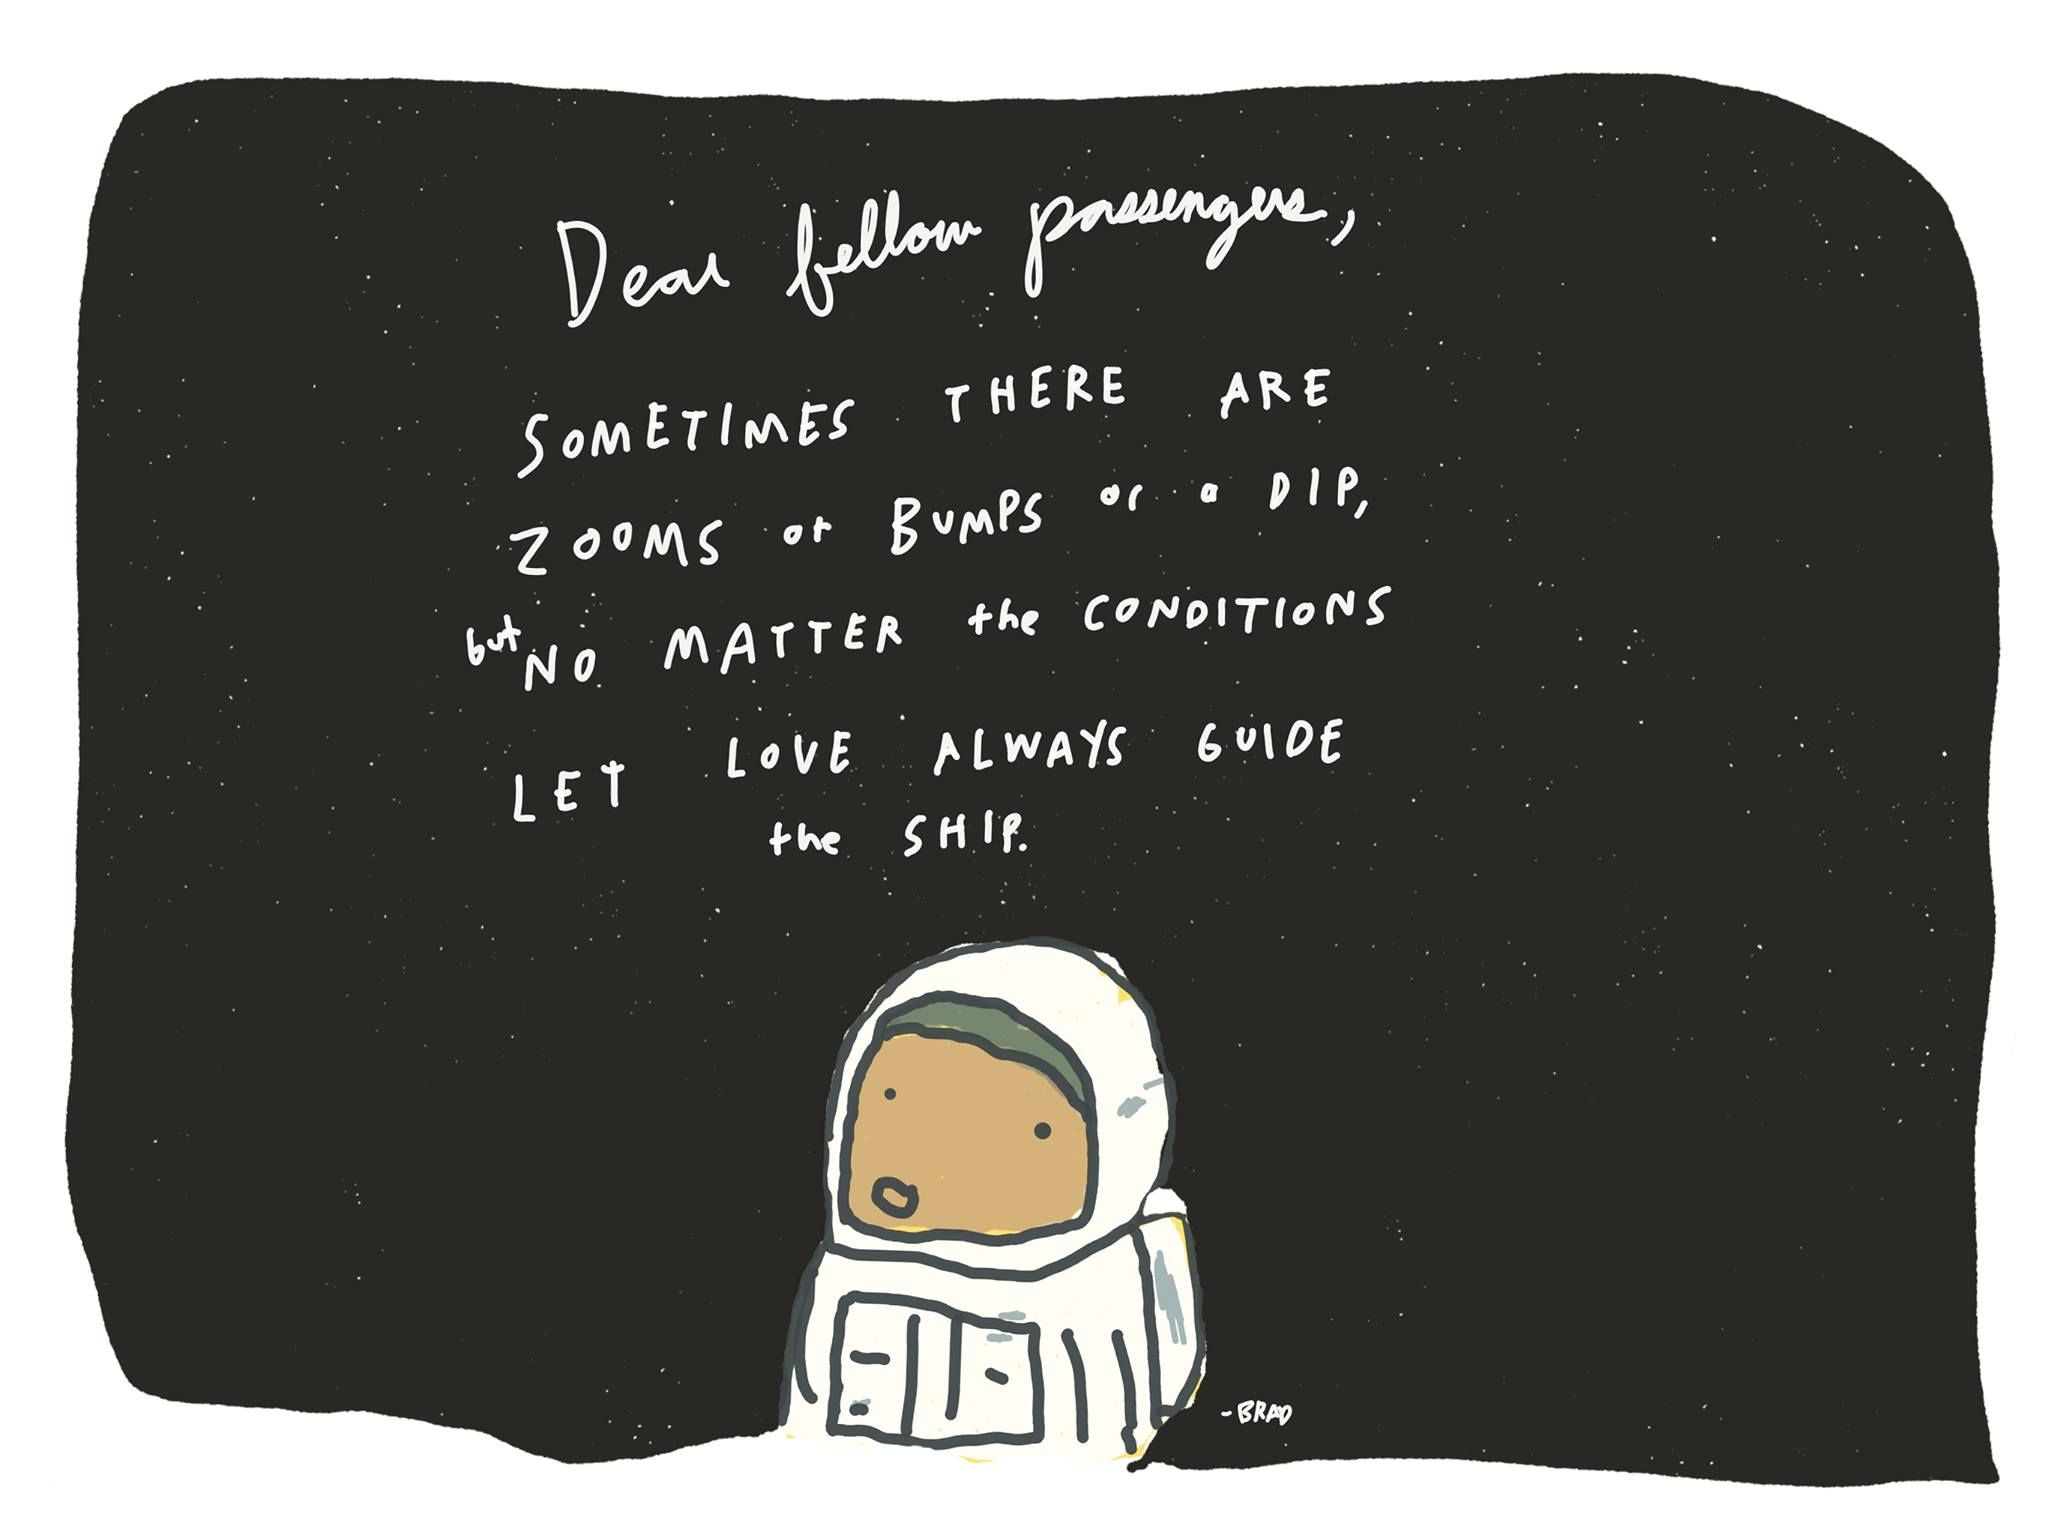 Dear Fellow Passengers On Spaceship Earth, Sometimes There